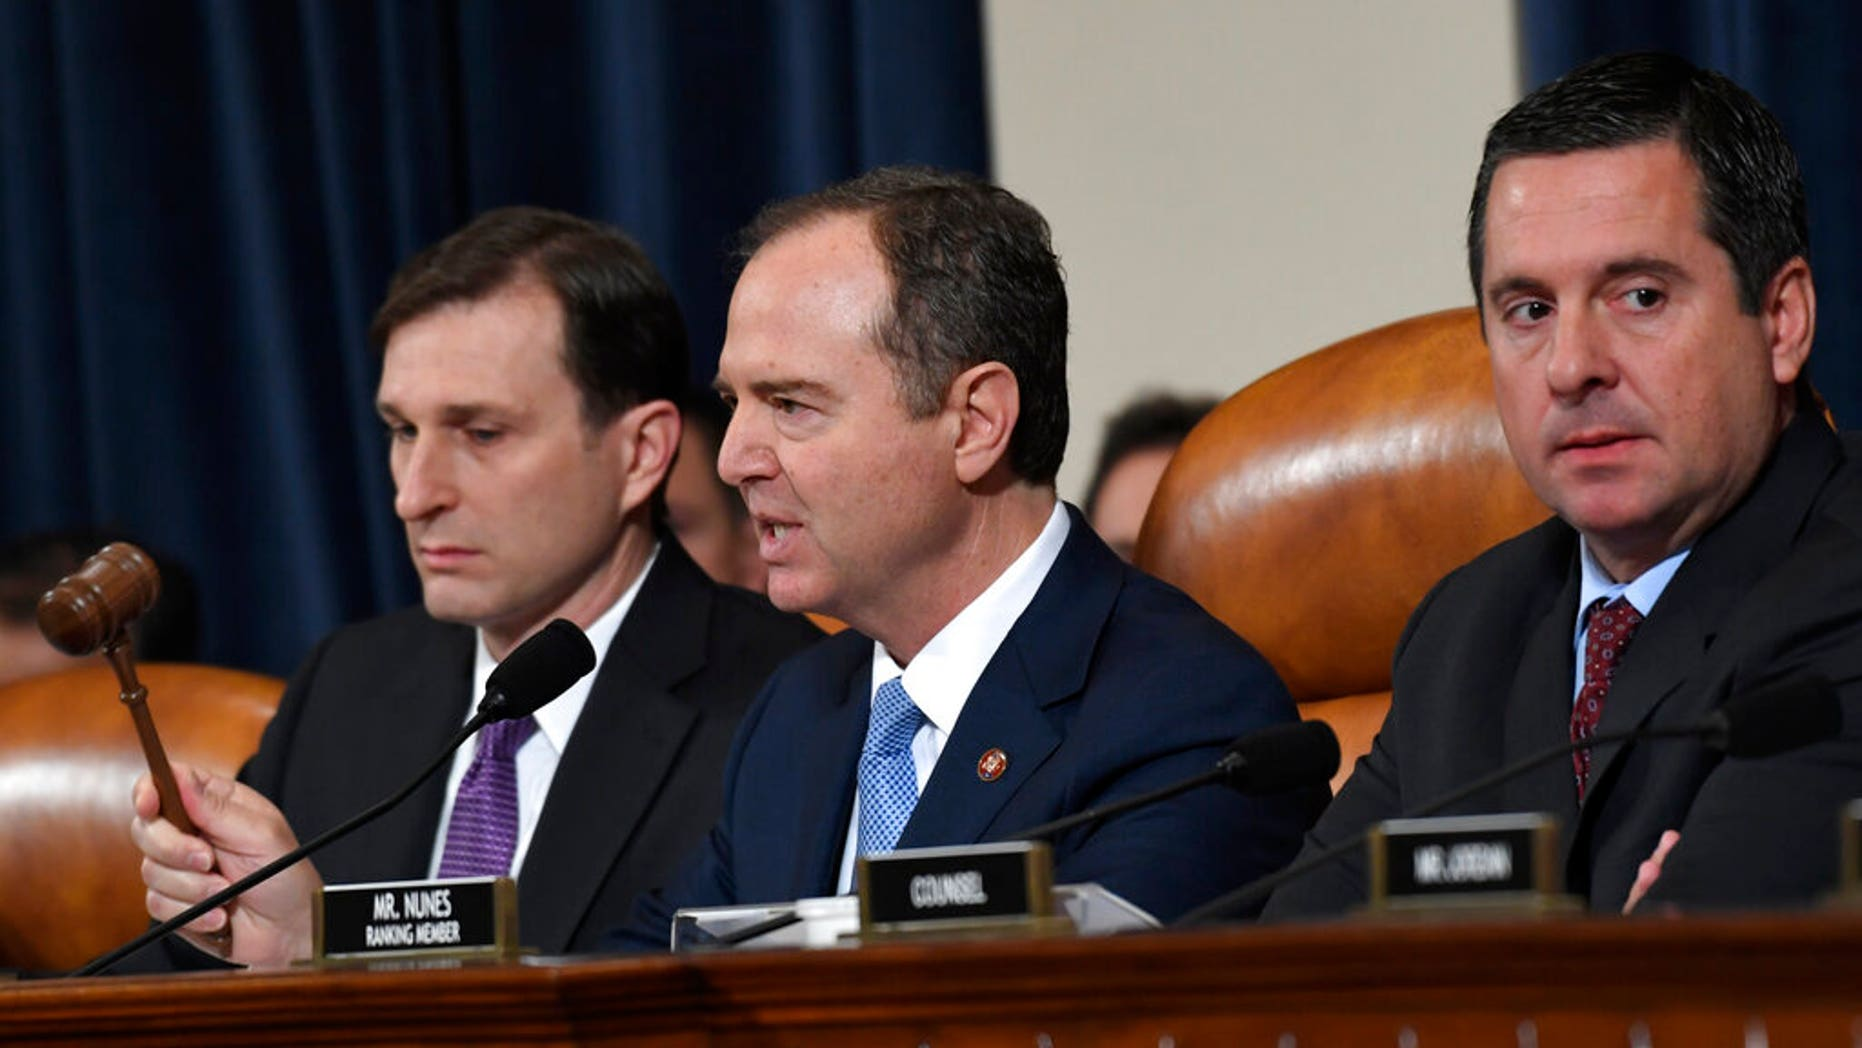 House Intelligence Committee Chairman Adam Schiff, D-Calif., center, flanked by House Democratic Counsel Daniel Goldman, left, and ranking member Devin Nunes, R-Calif. (AP Photo/Susan Walsh)